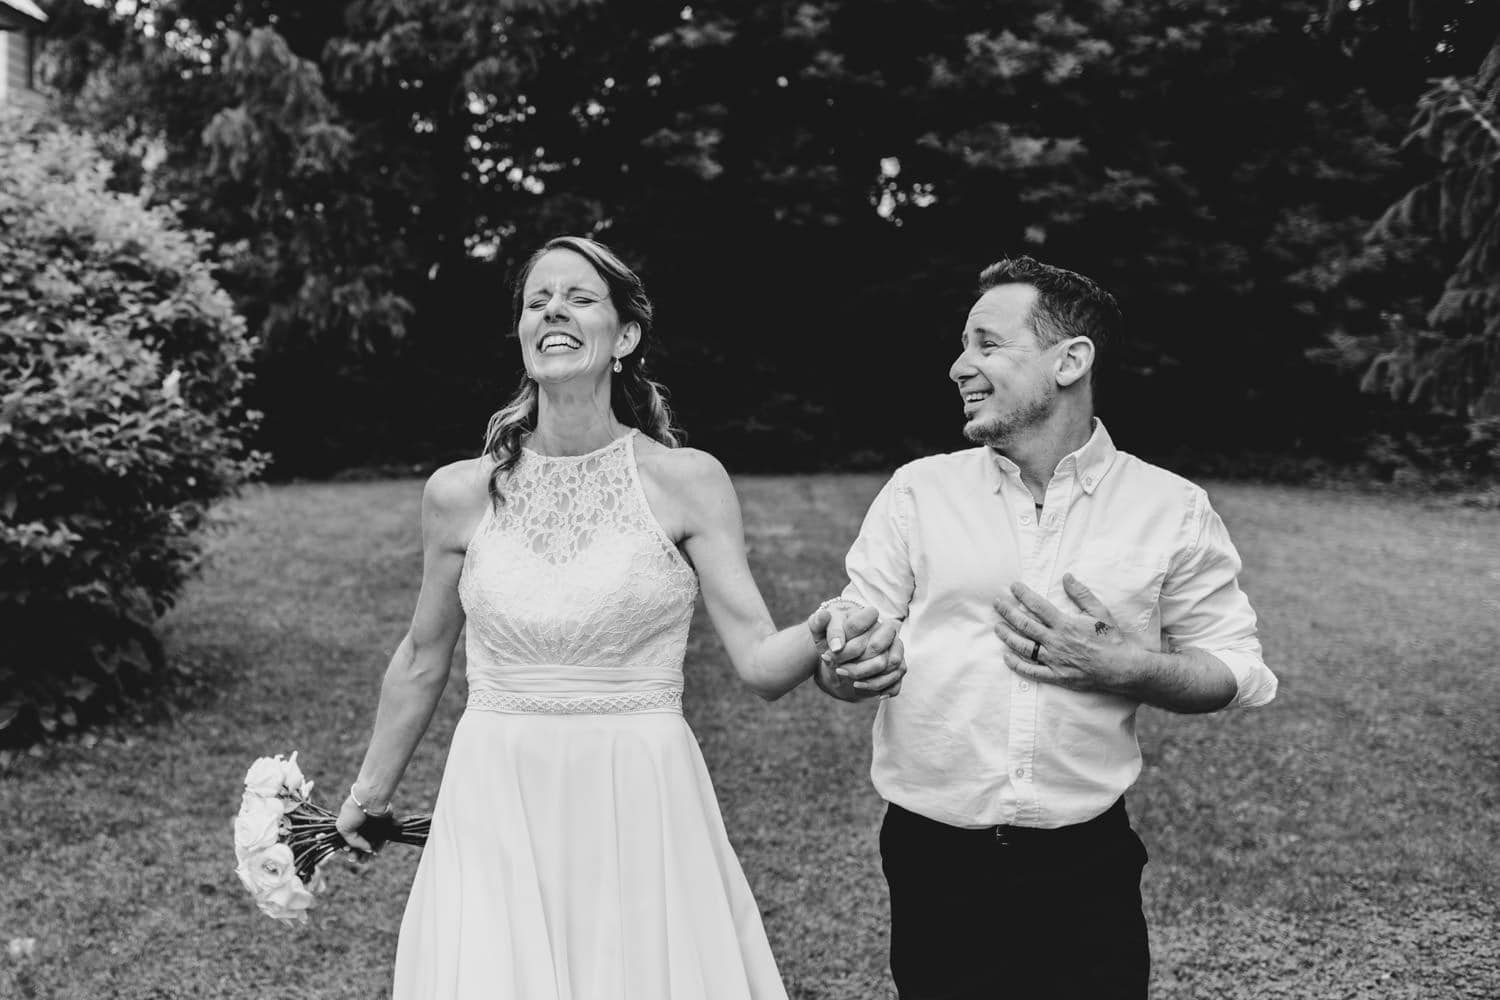 bride and groom laugh together after the ceremony - small outdoor wedding at the schoolhouse